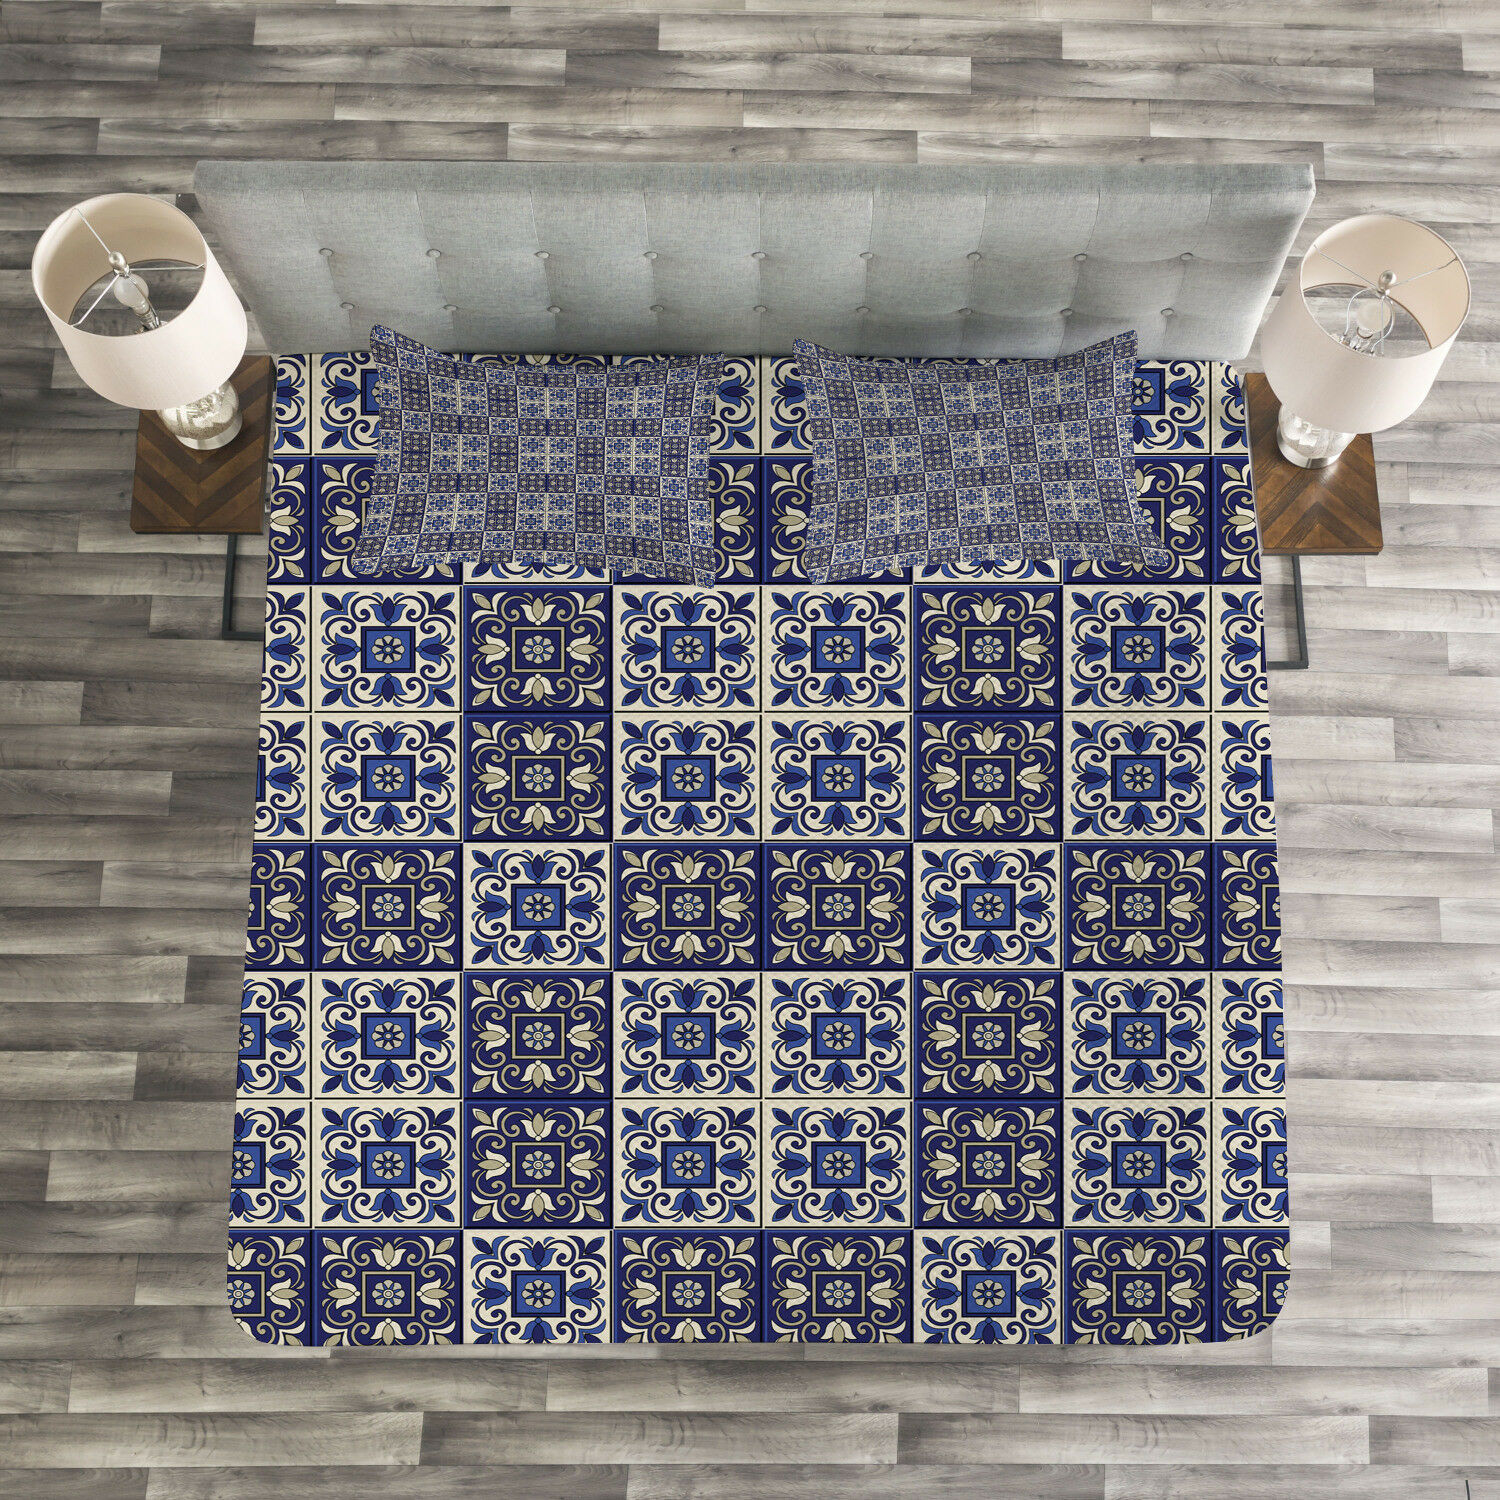 Mgoldccan Quilted Bedspread & Pillow Shams Set, Squares blueeeejo Tiles Print